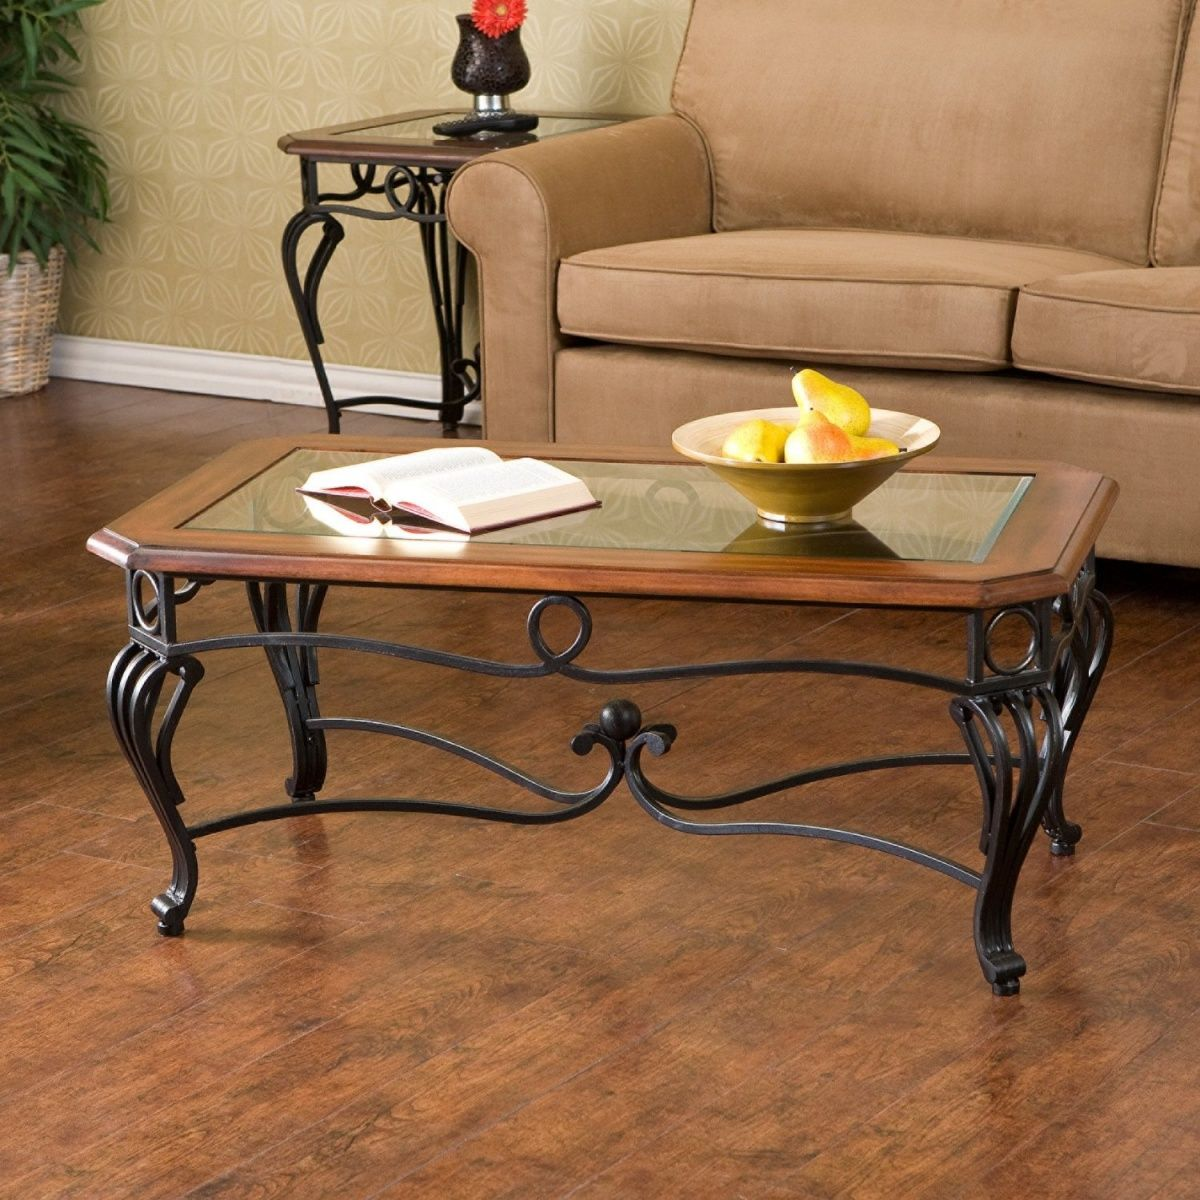 Glass Coffee Table Design Top 5 Decorating